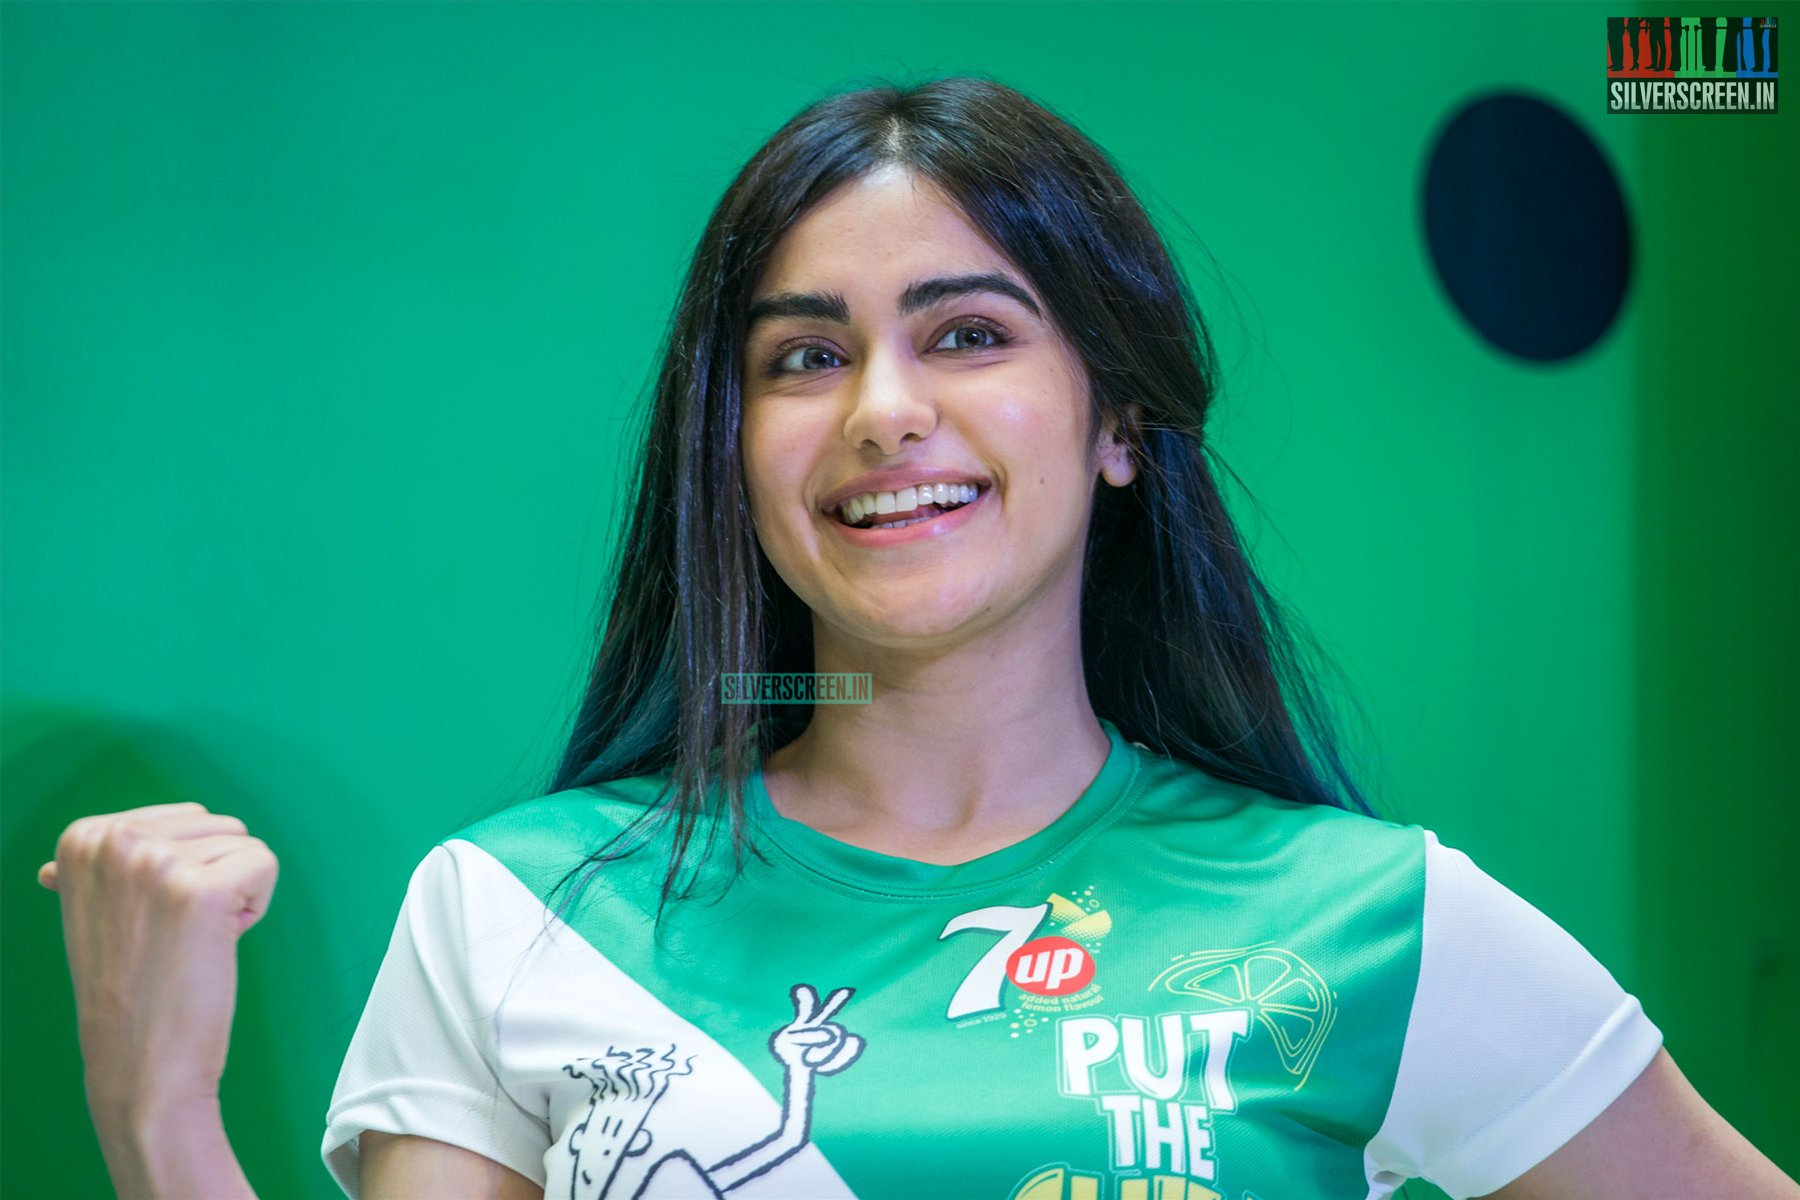 Adah Sharma And Popular Mascot Launch Soft Drink Brand's New